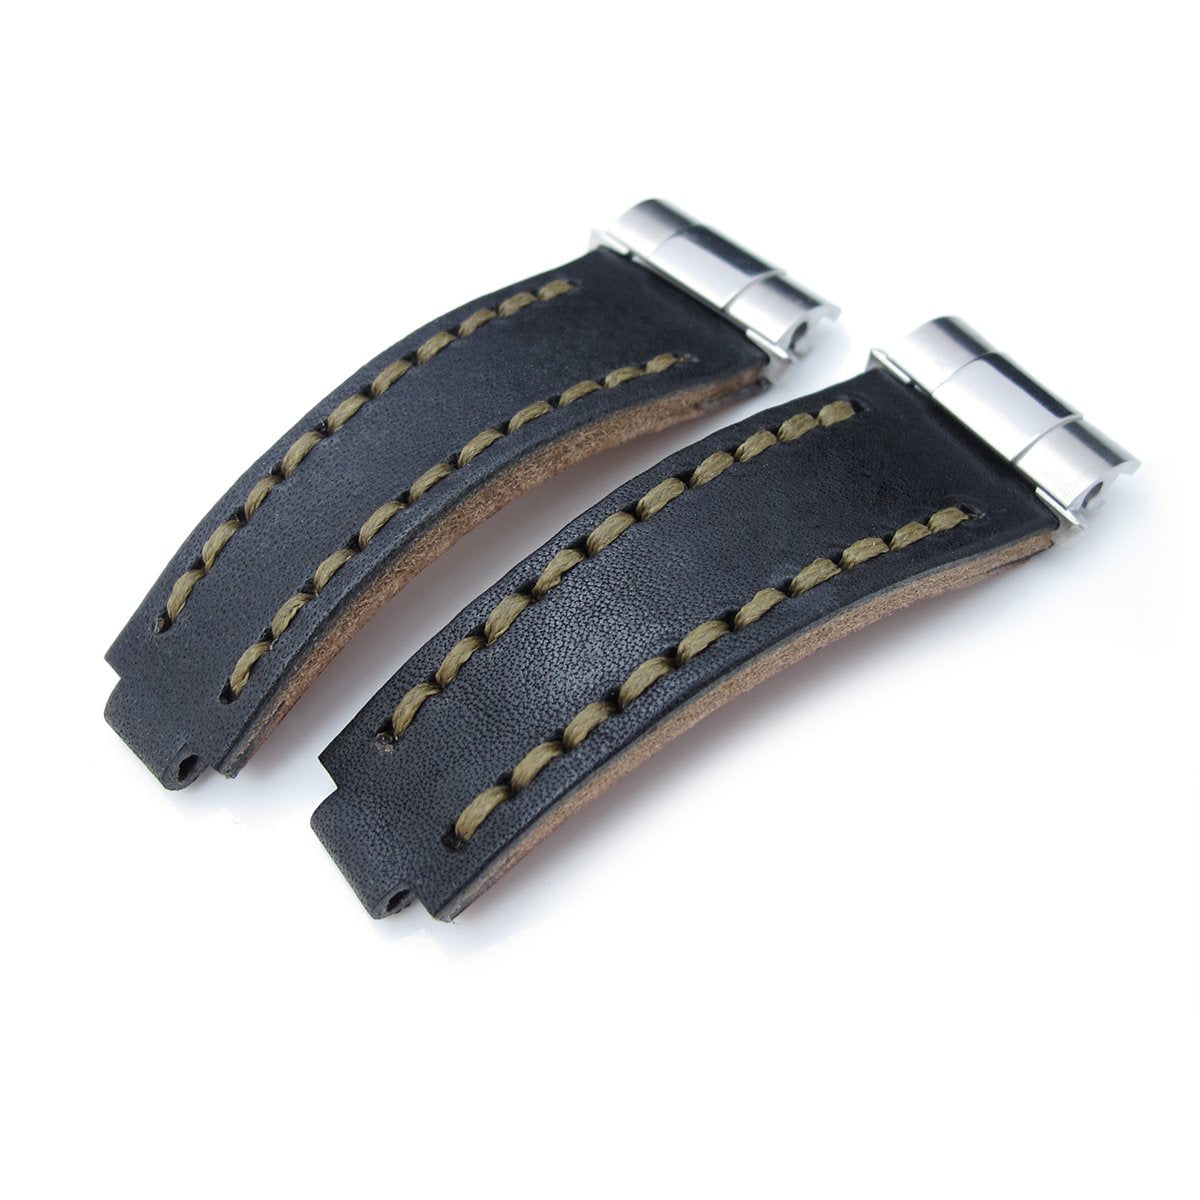 Revenge End Link Replacement Watch Strap Tailor-made for RX Matte Black Pull Up Leather Military Green St. Strapcode Watch Bands